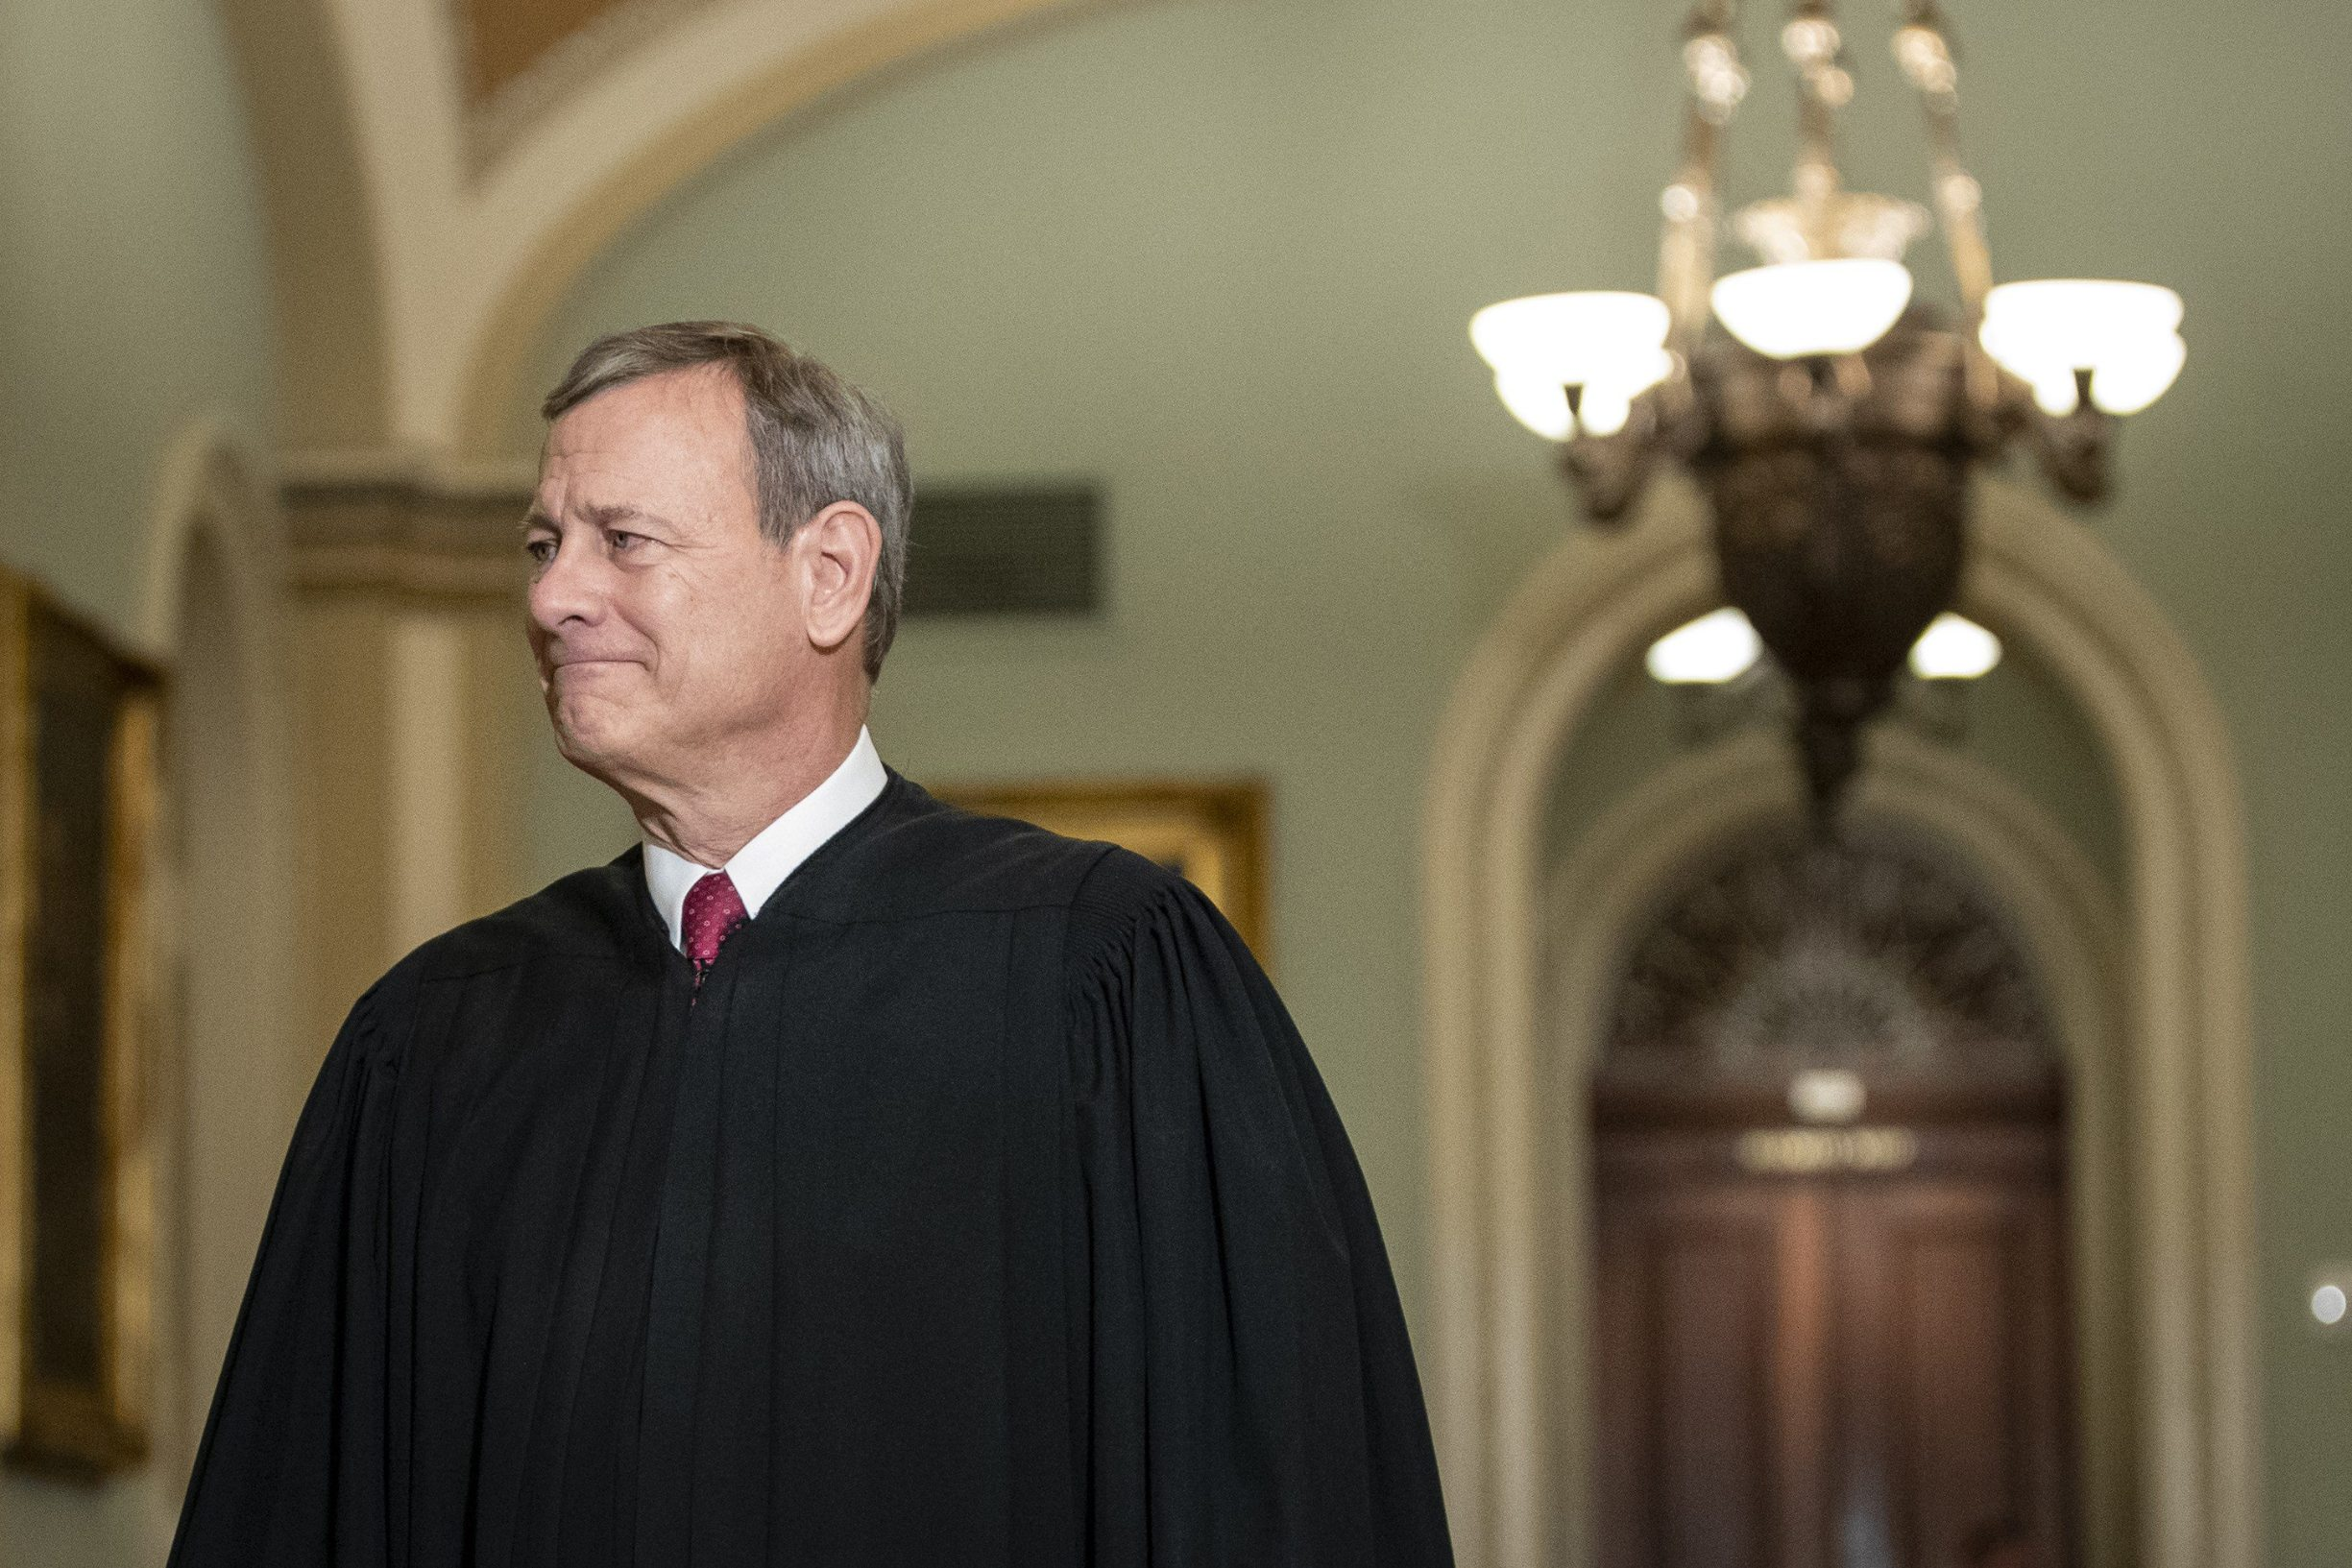 WASHINGTON, DC JANUARY 16: Supreme Court Chief Justice John Roberts arrives to the Senate chamber for impeachment proceedings at the U.S. Capitol on January 16, 2020 in Washington, DC. On Thursday, the House impeachment managers will read the articles of impeachment against President Trump in the Senate chamber and the chief justice of the Supreme Court and every senator will be sworn in.   Drew Angerer/Getty Images/AFP == FOR NEWSPAPERS, INTERNET, TELCOS & TELEVISION USE ONLY ==